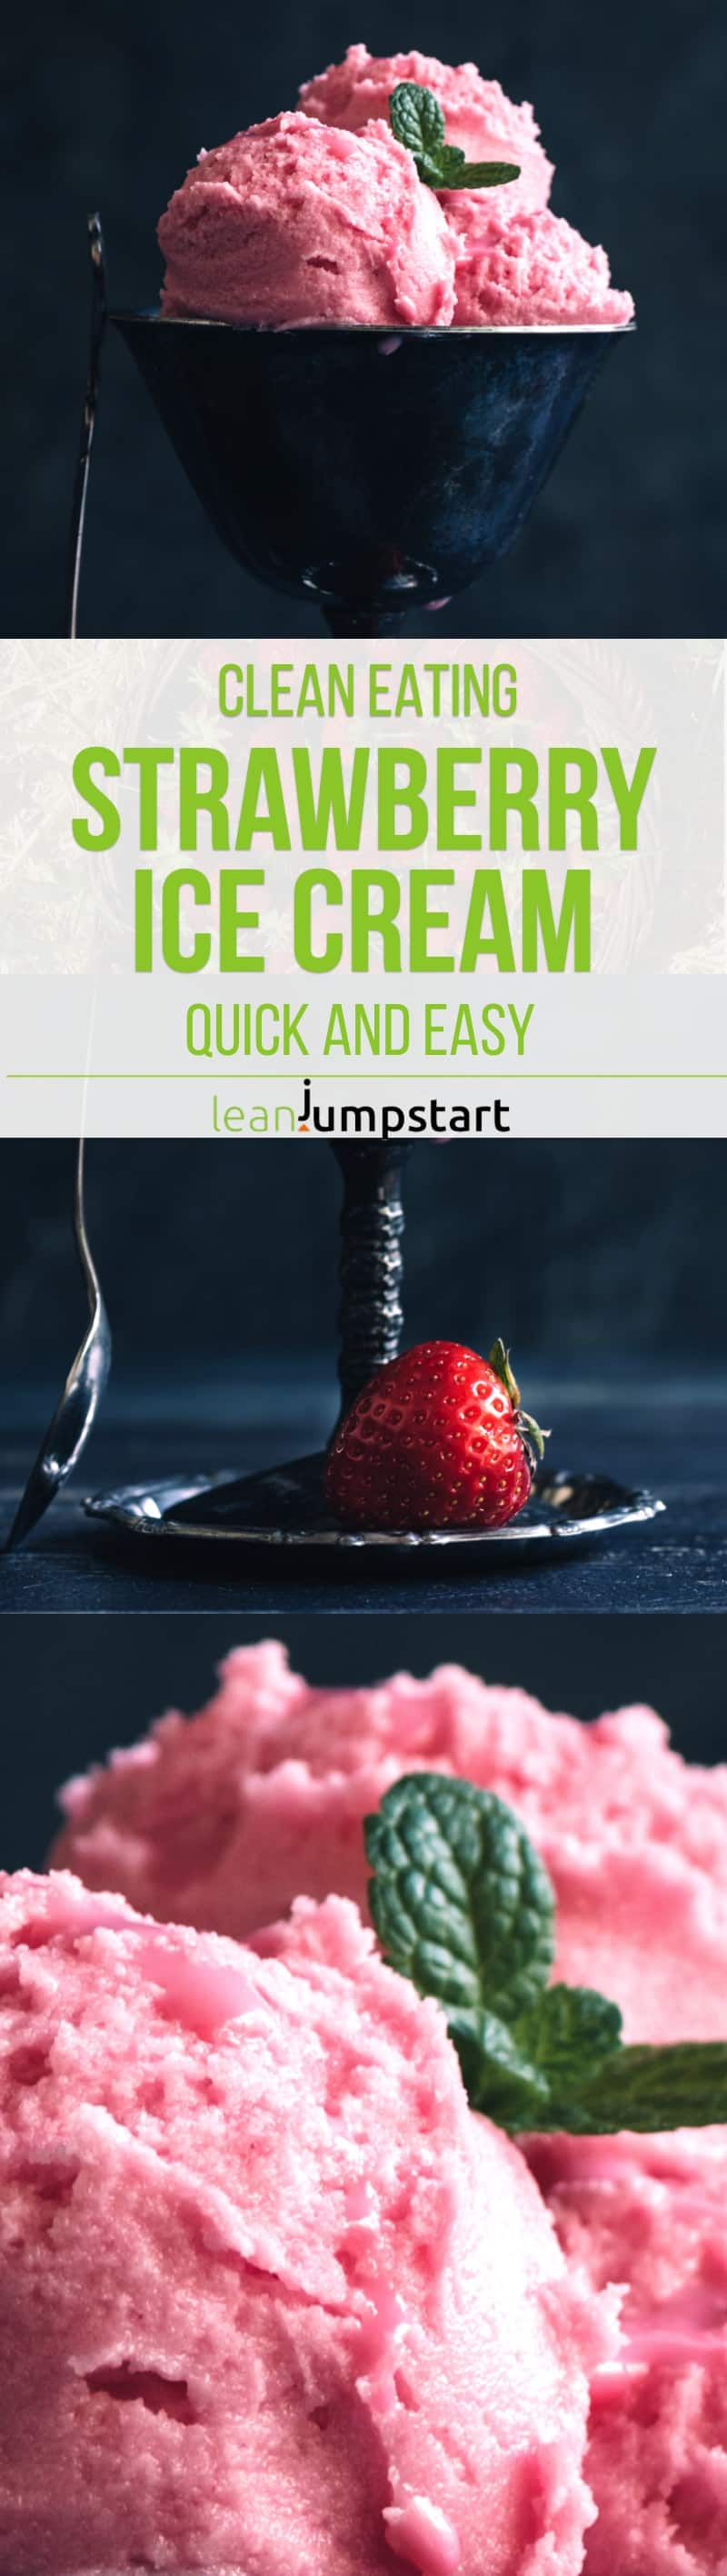 This 3-ingredient strawberry ice cream recipe is a perfect option for a healthy bit of deliciousness. It is a cool, clean and refreshing treat on a hot summer day that is ready within a few minutes. Repin this and then click through to read about this quick clean eating dessert!